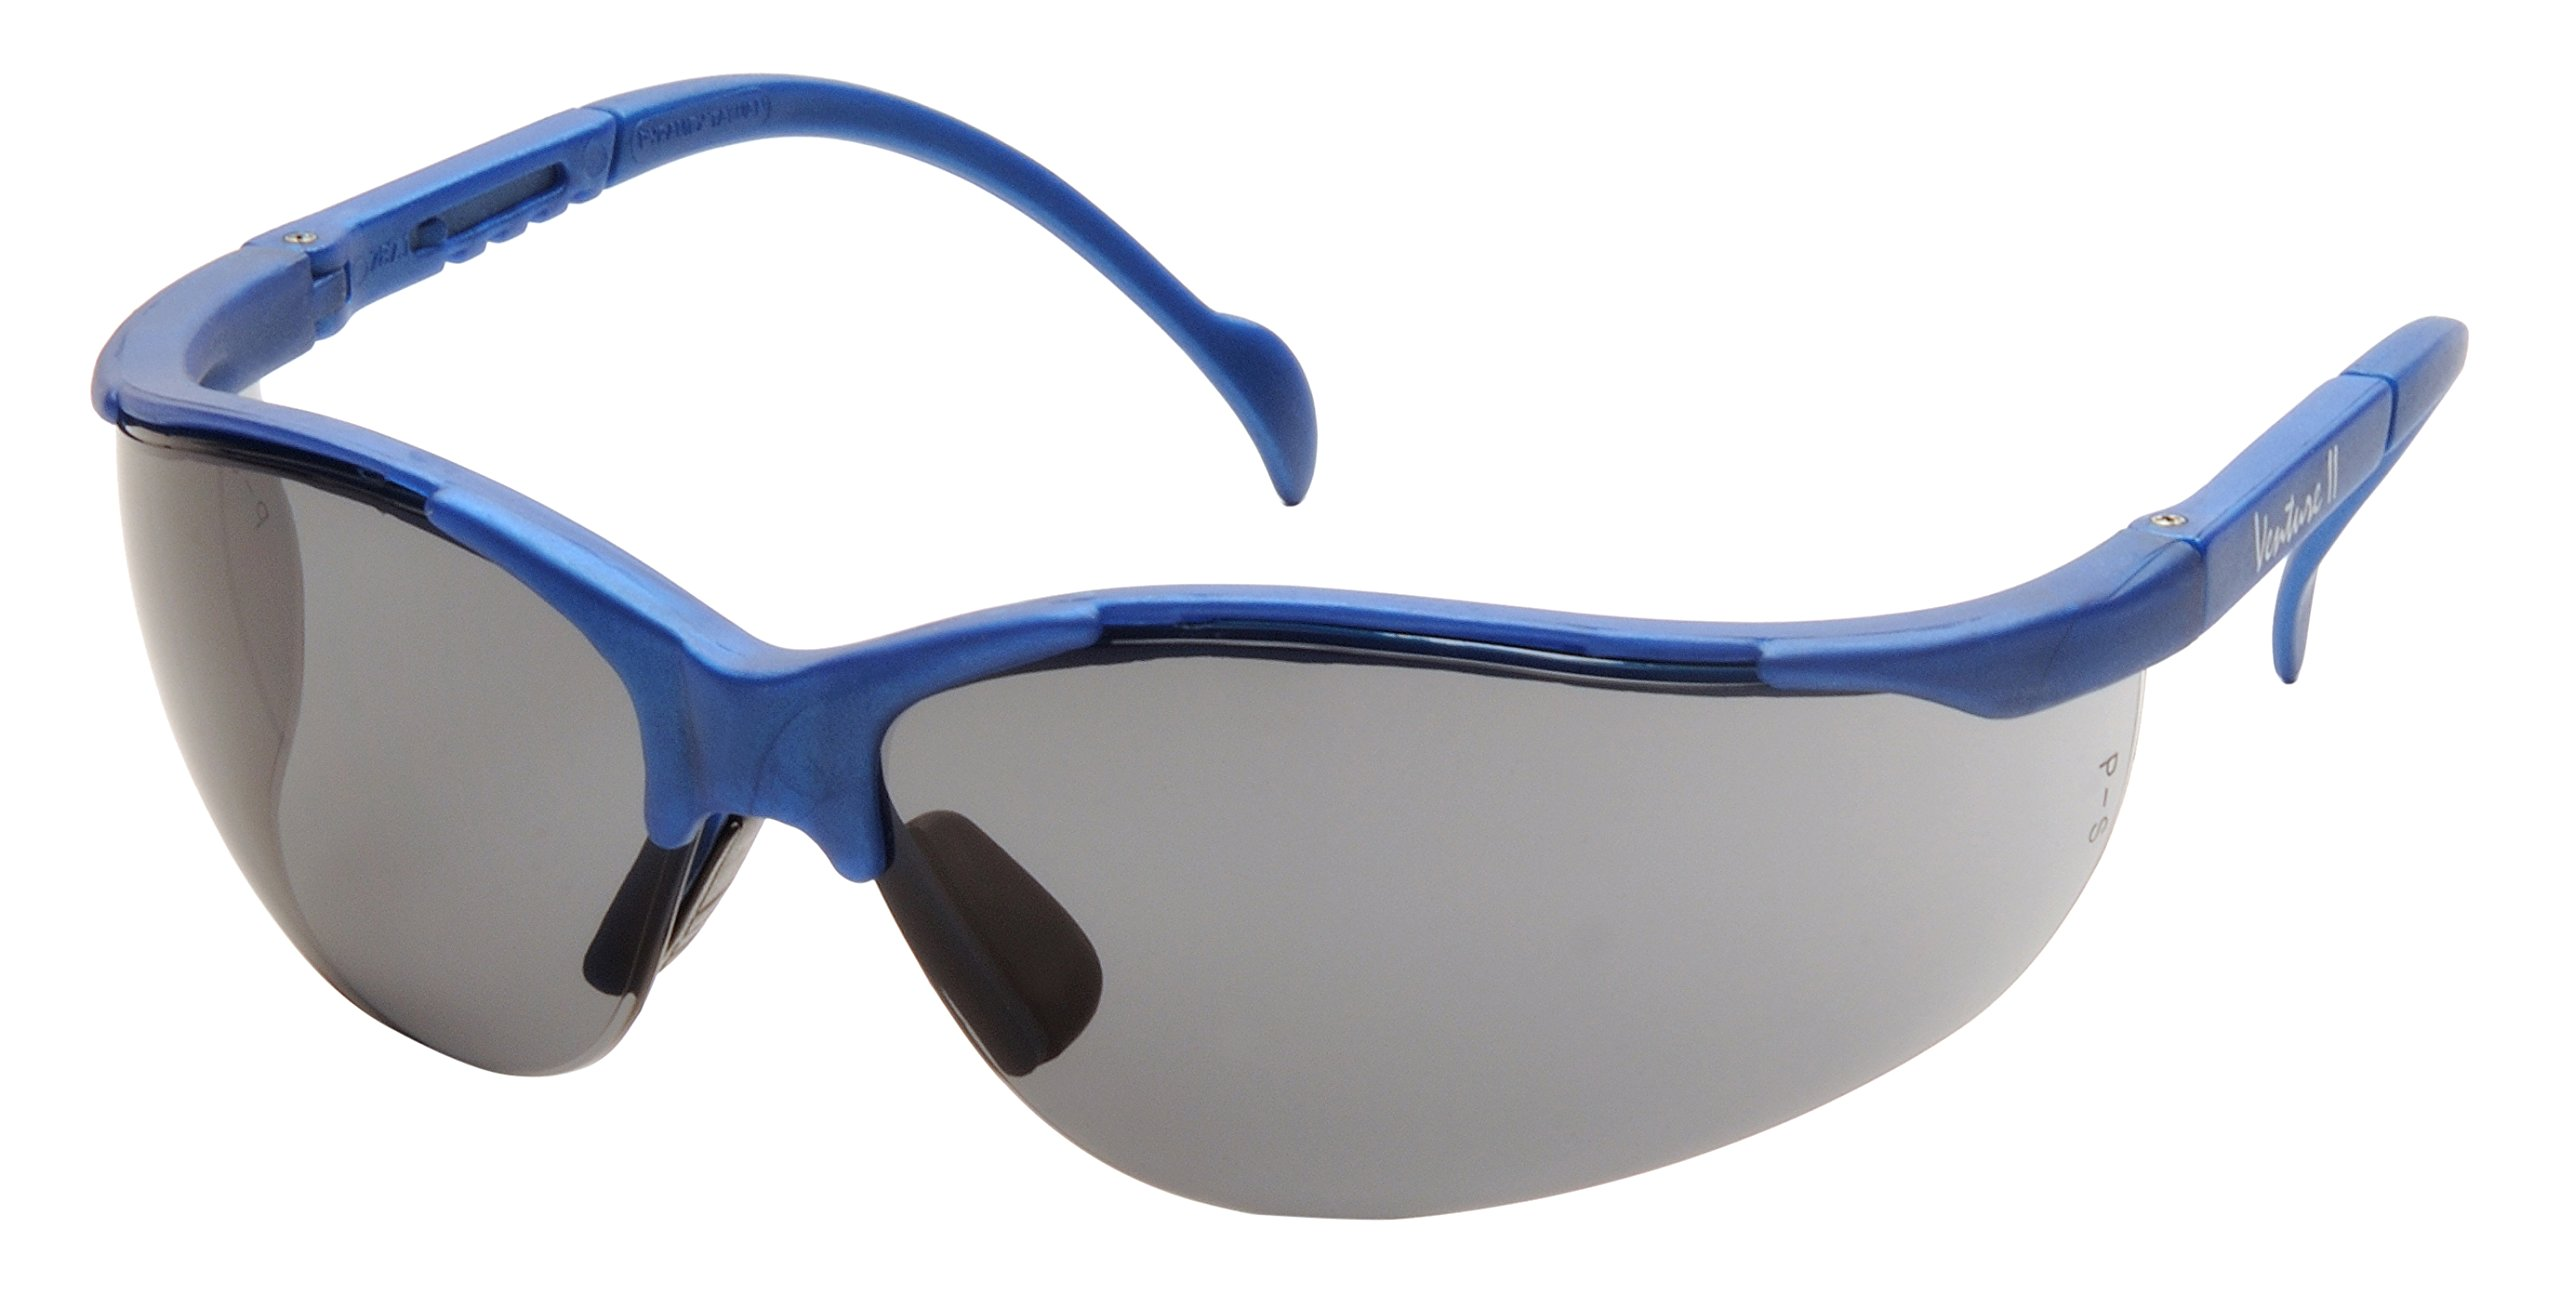 Pyramex Venture Ii Safety Eyewear, Gray Lens With Metallic Blue Frame by Pyramex Safety